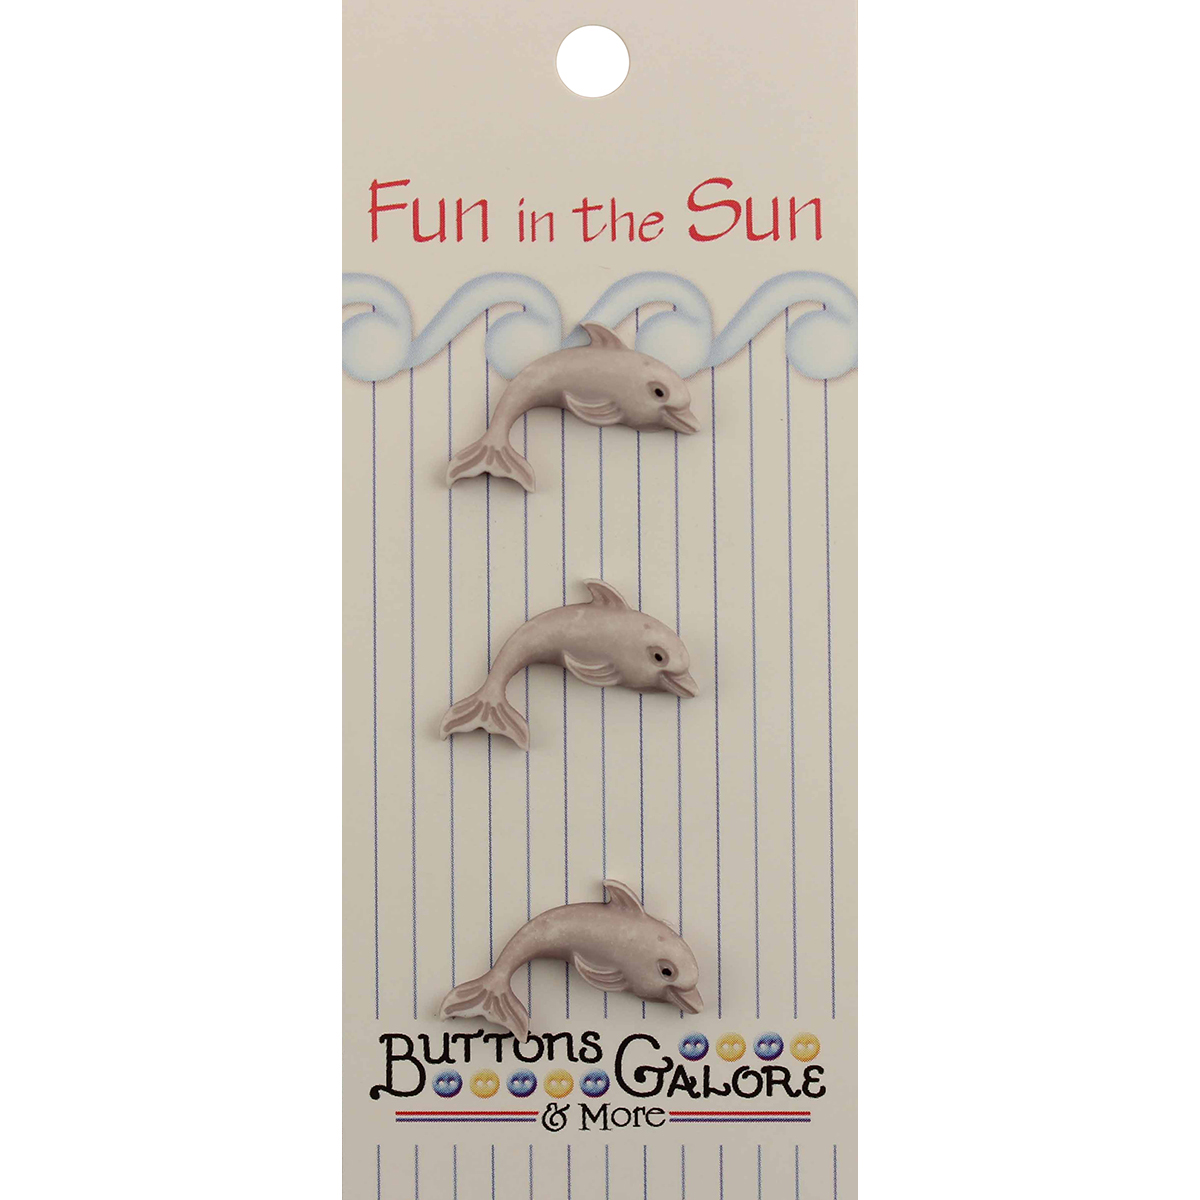 Fun In The Sun Buttons-Dolphin